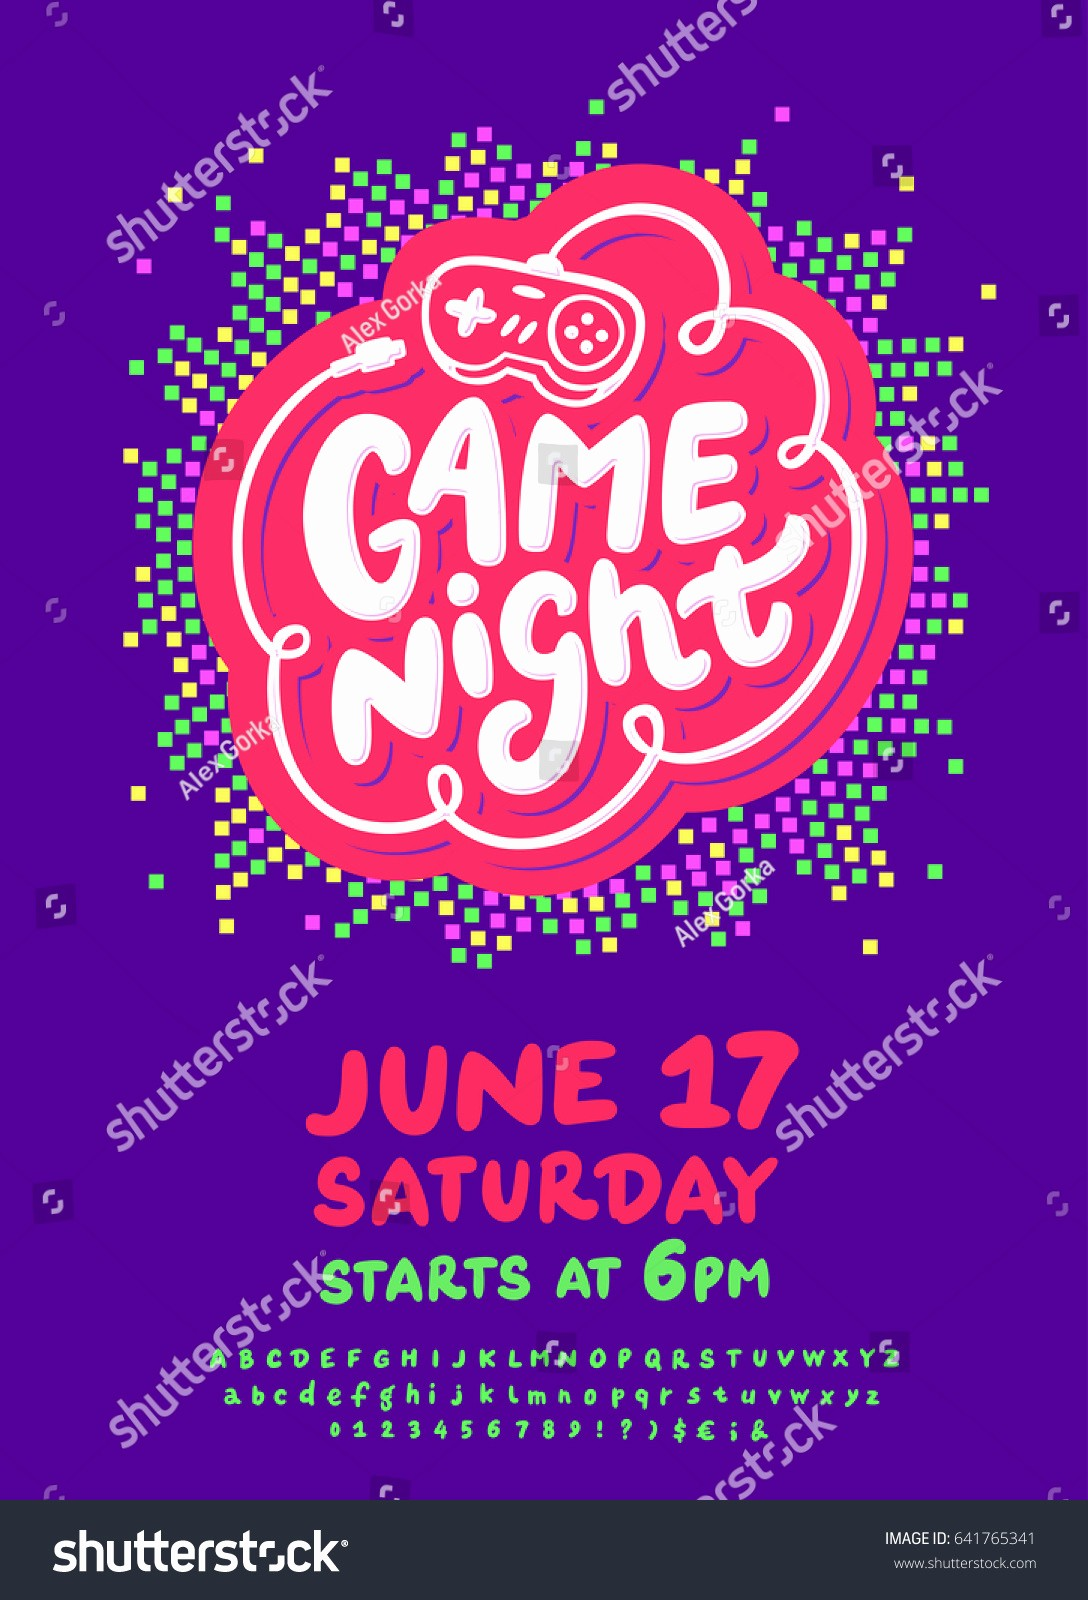 Free Game Night Flyer Template Unique Game Night Flyer Template Gallery Free Templates Ideas